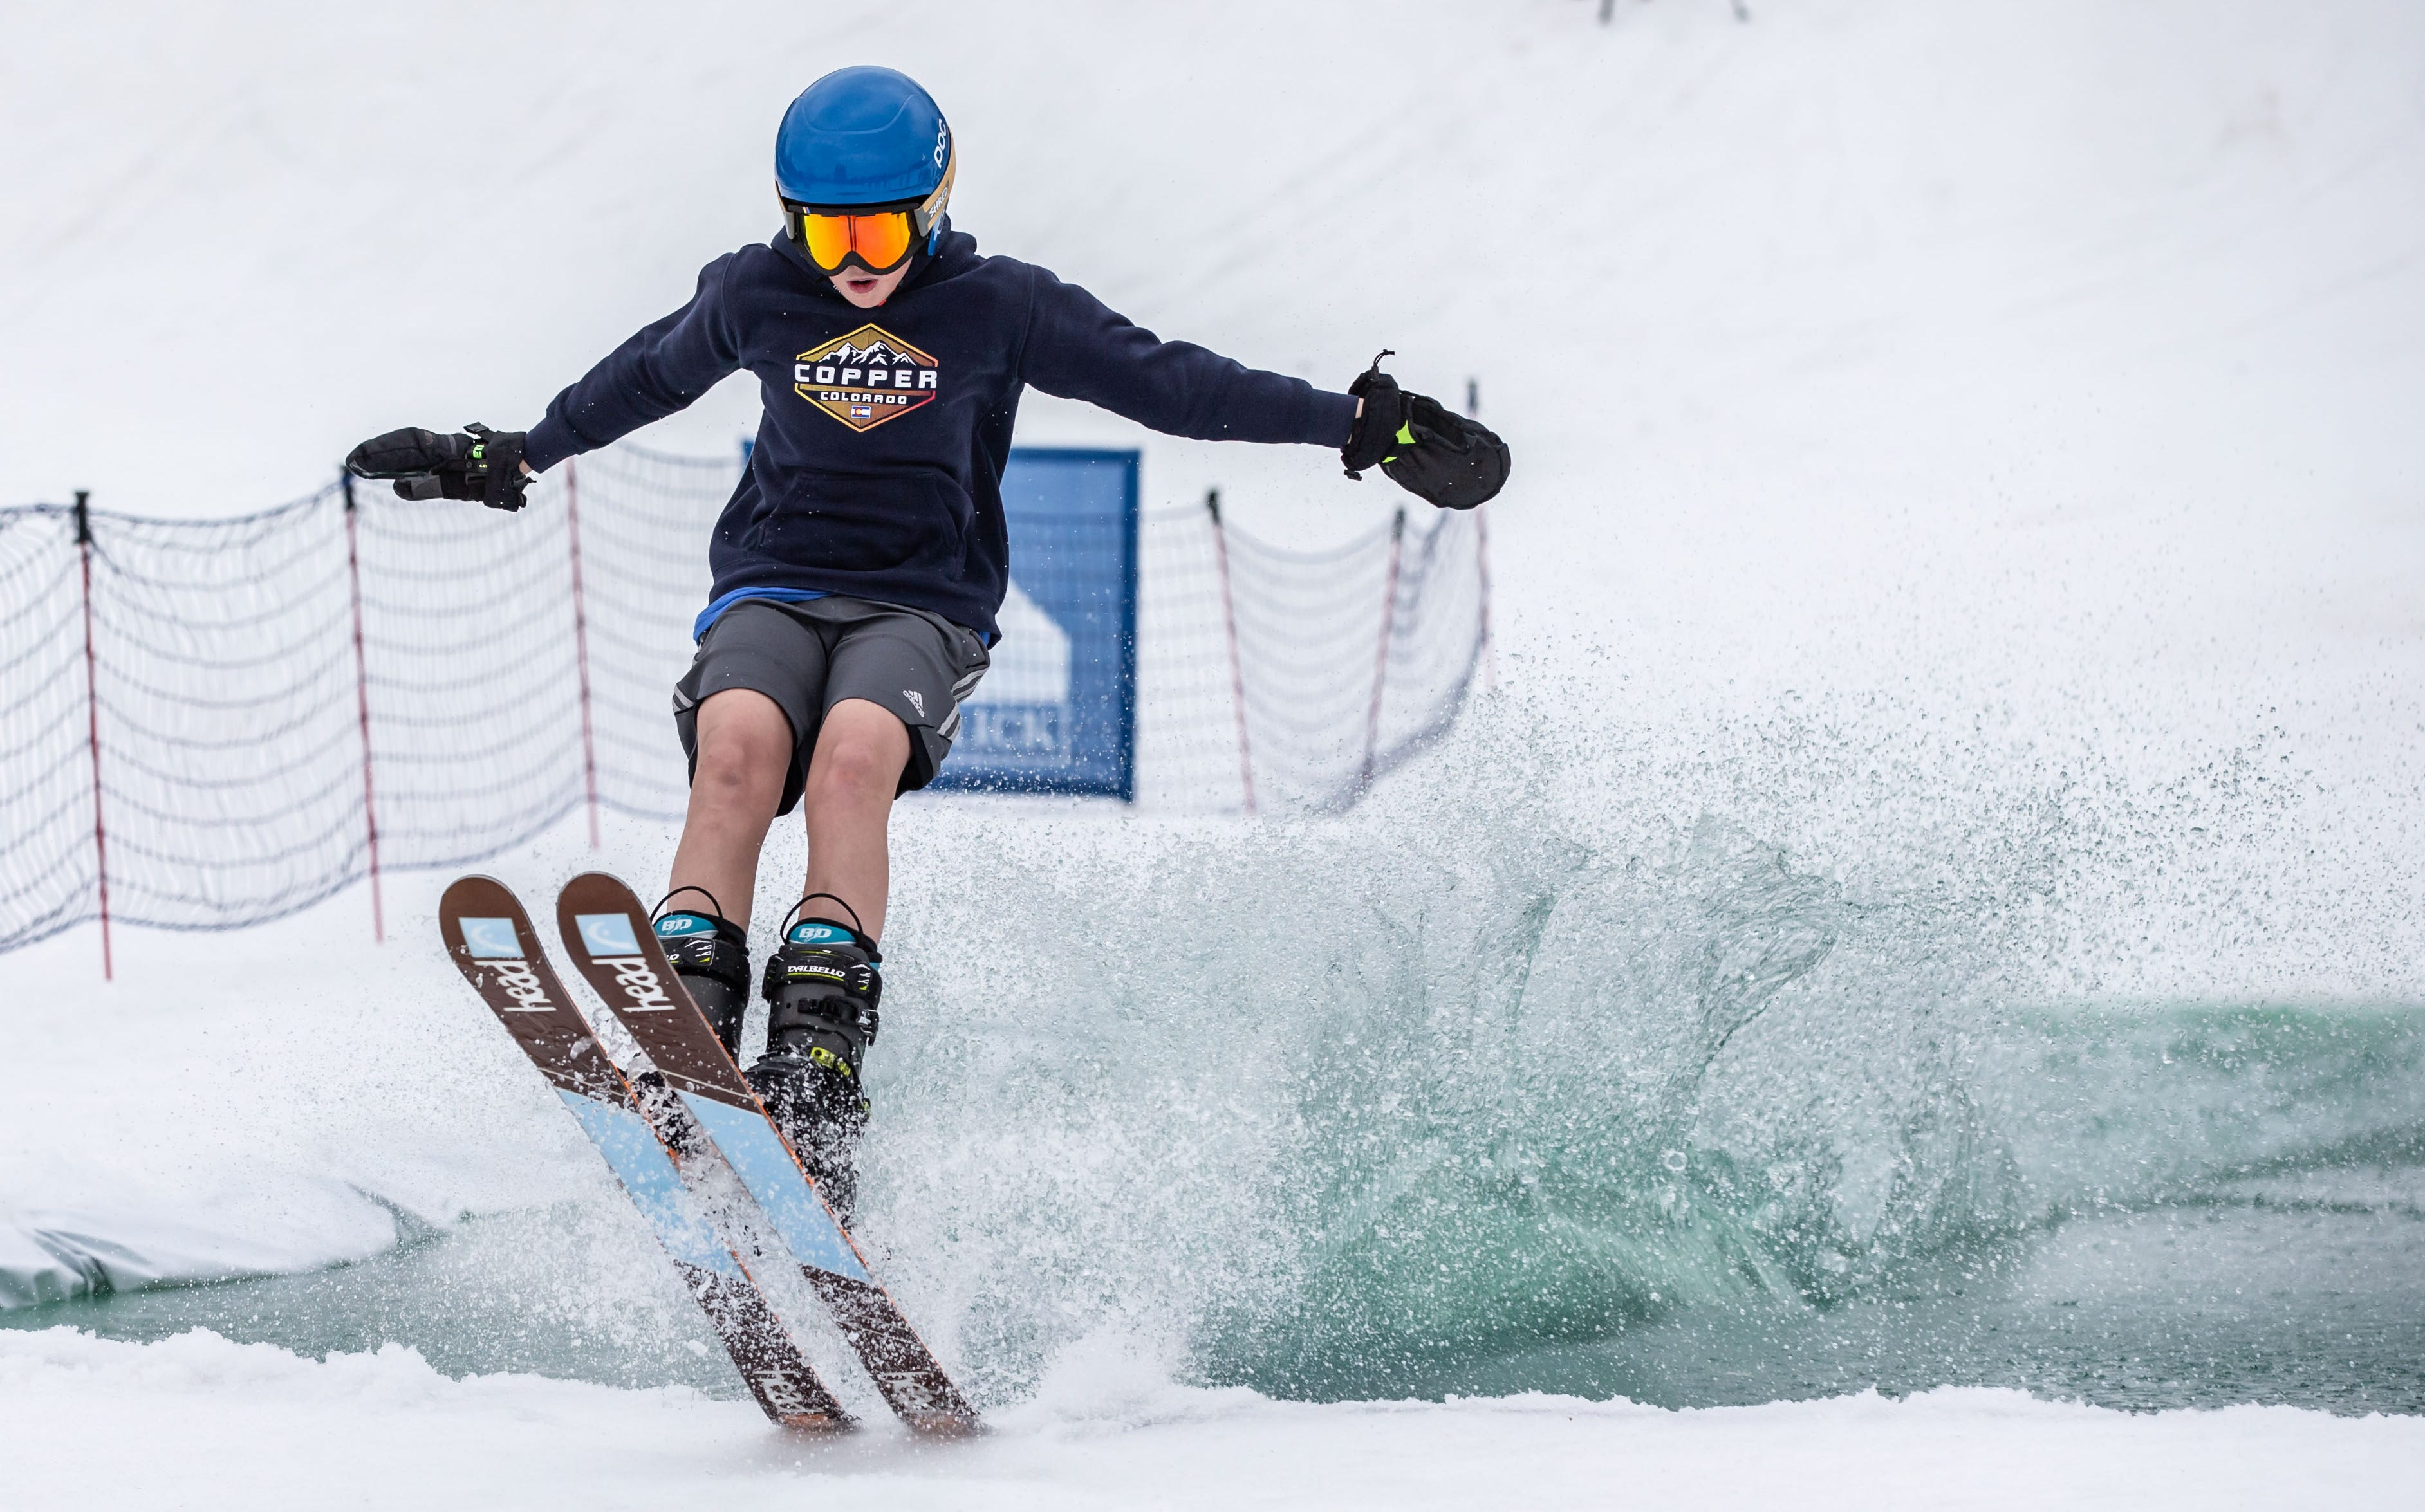 Burke Phillips, 12, of Hartland rockets out of the water during the 2nd annual Pond Skim at Ausblick Ski Hill in Sussex on Saturday, April 6, 2019. The pond skim is held on the last day of the season as club members celebrate another fun-filled year on the slopes.